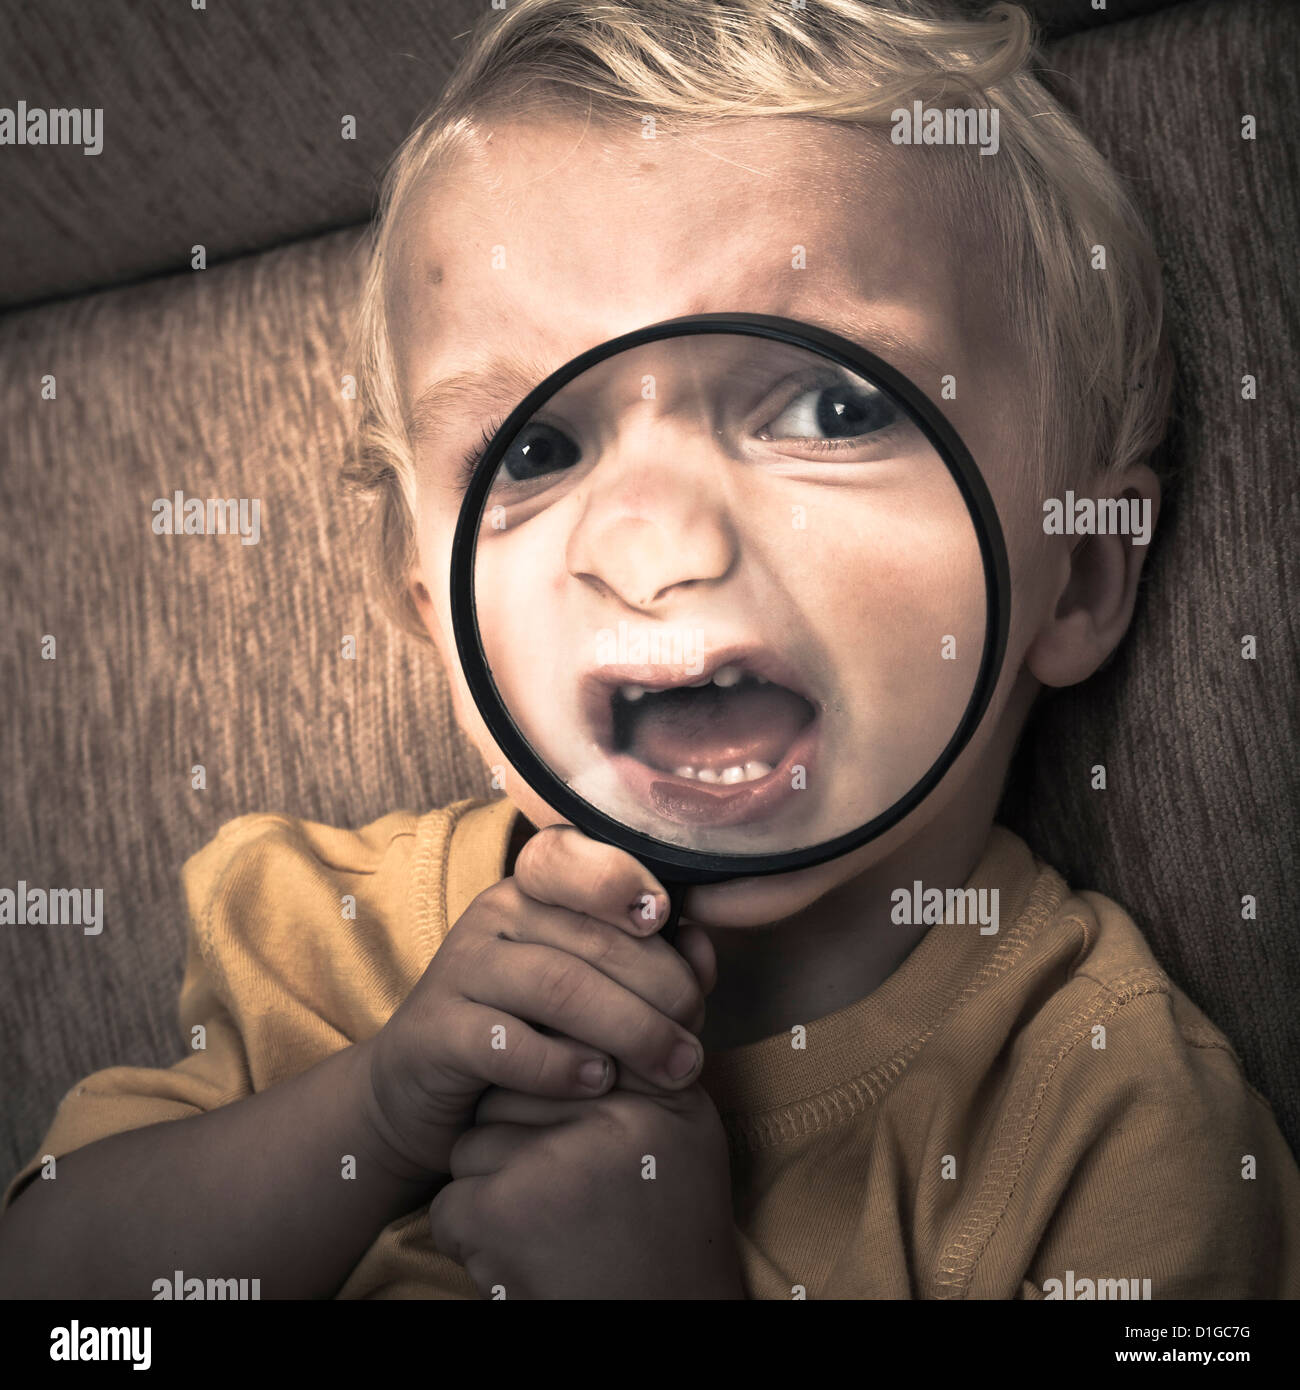 Close up of scary horror child boy face. - Stock Image